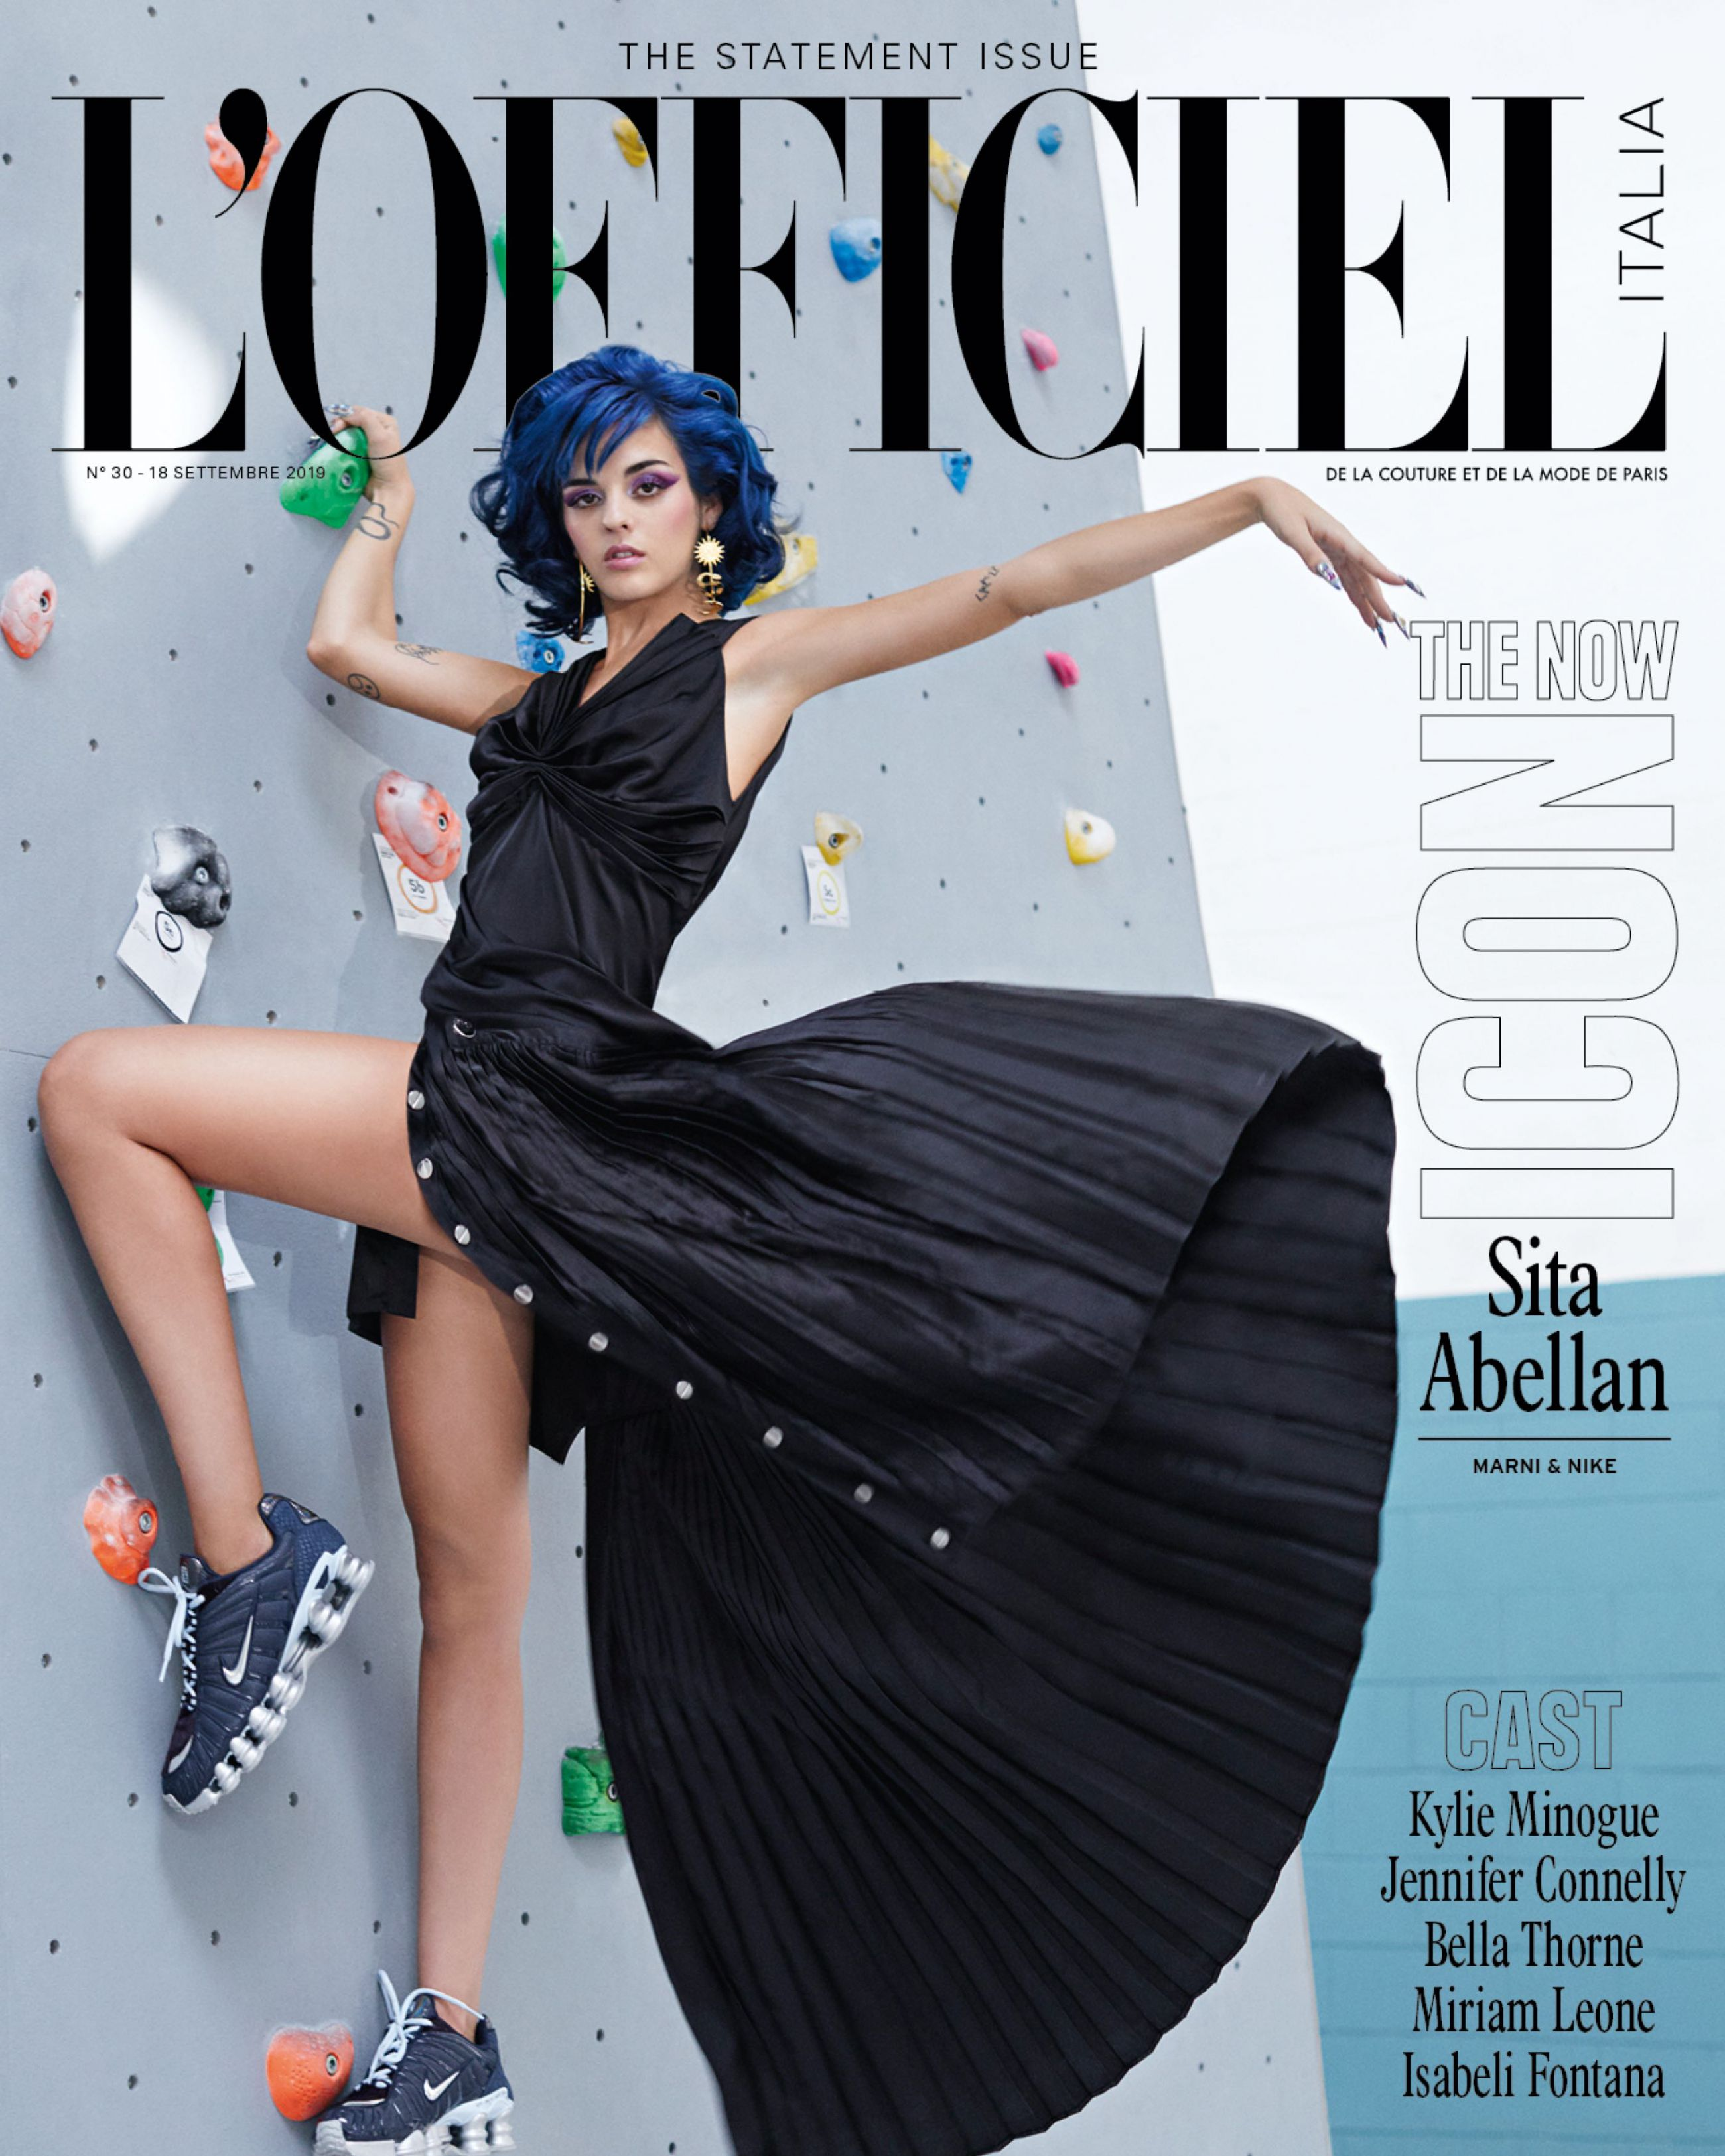 OFFICIEL ITALY COVER  | Image 4